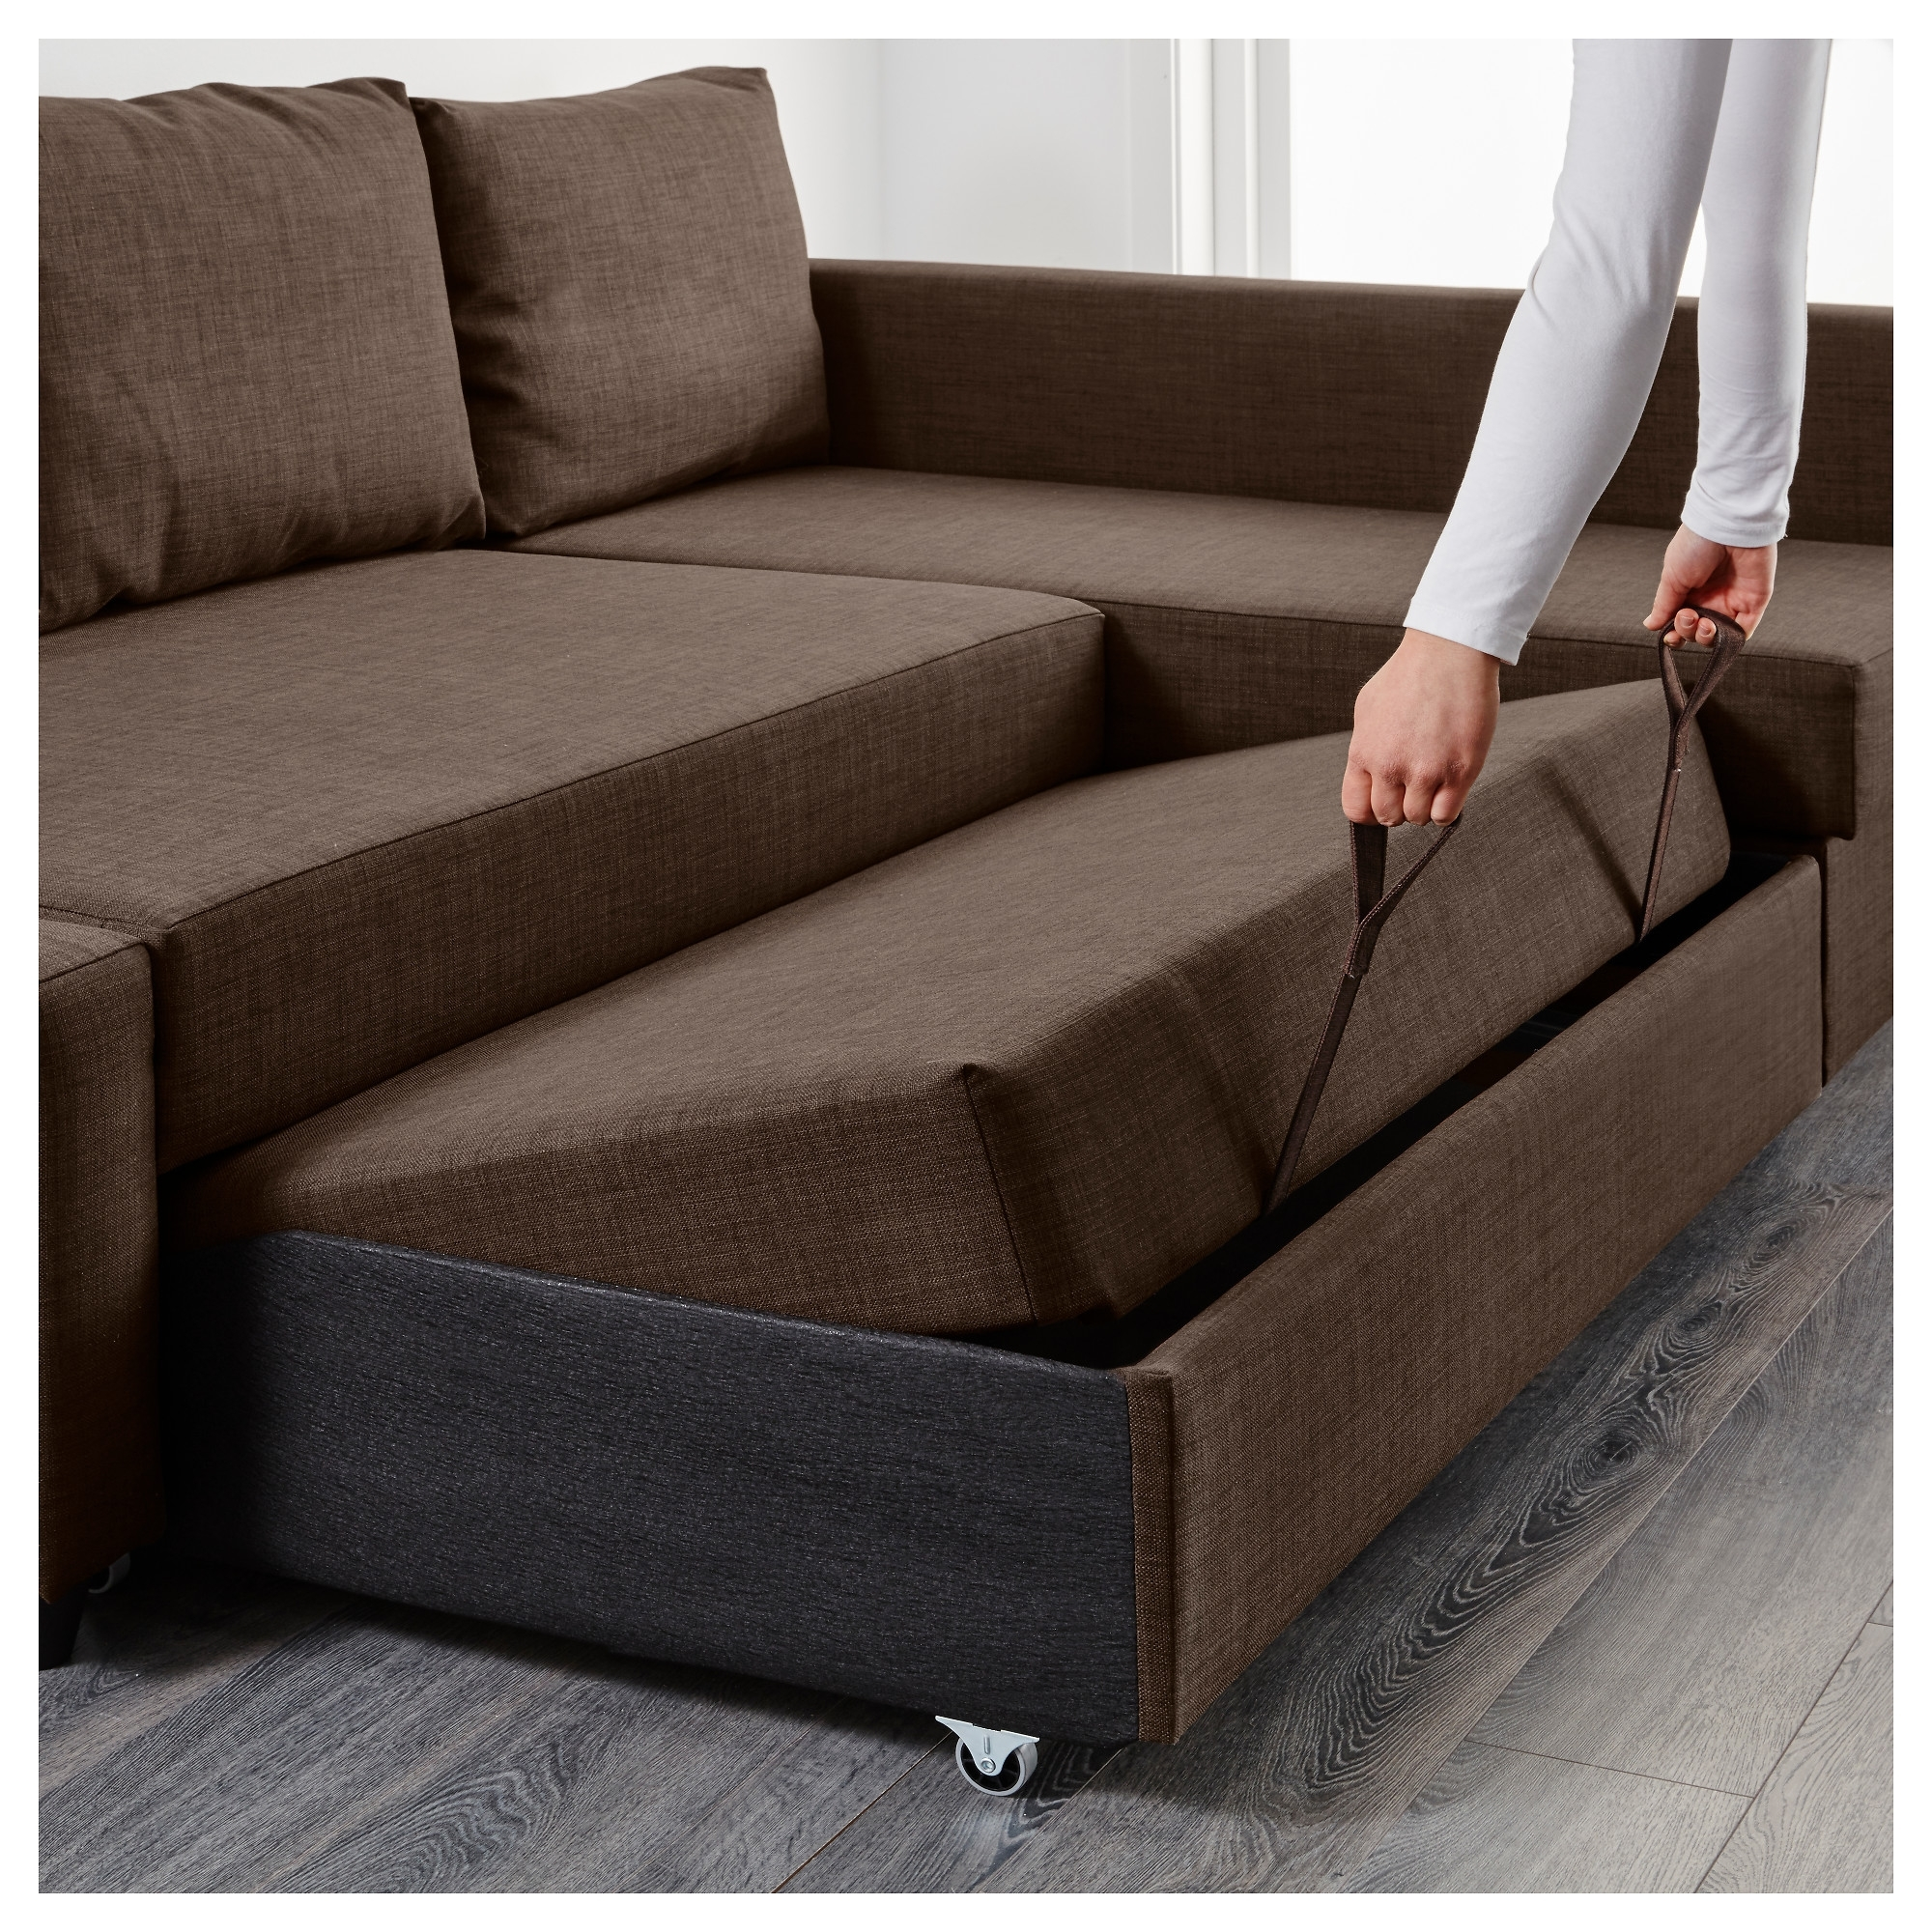 Friheten Sleeper Sectional,3 Seat W/storage – Skiftebo Dark Gray Within Well Known Sleeper Sofas With Storage Chaise (View 10 of 15)